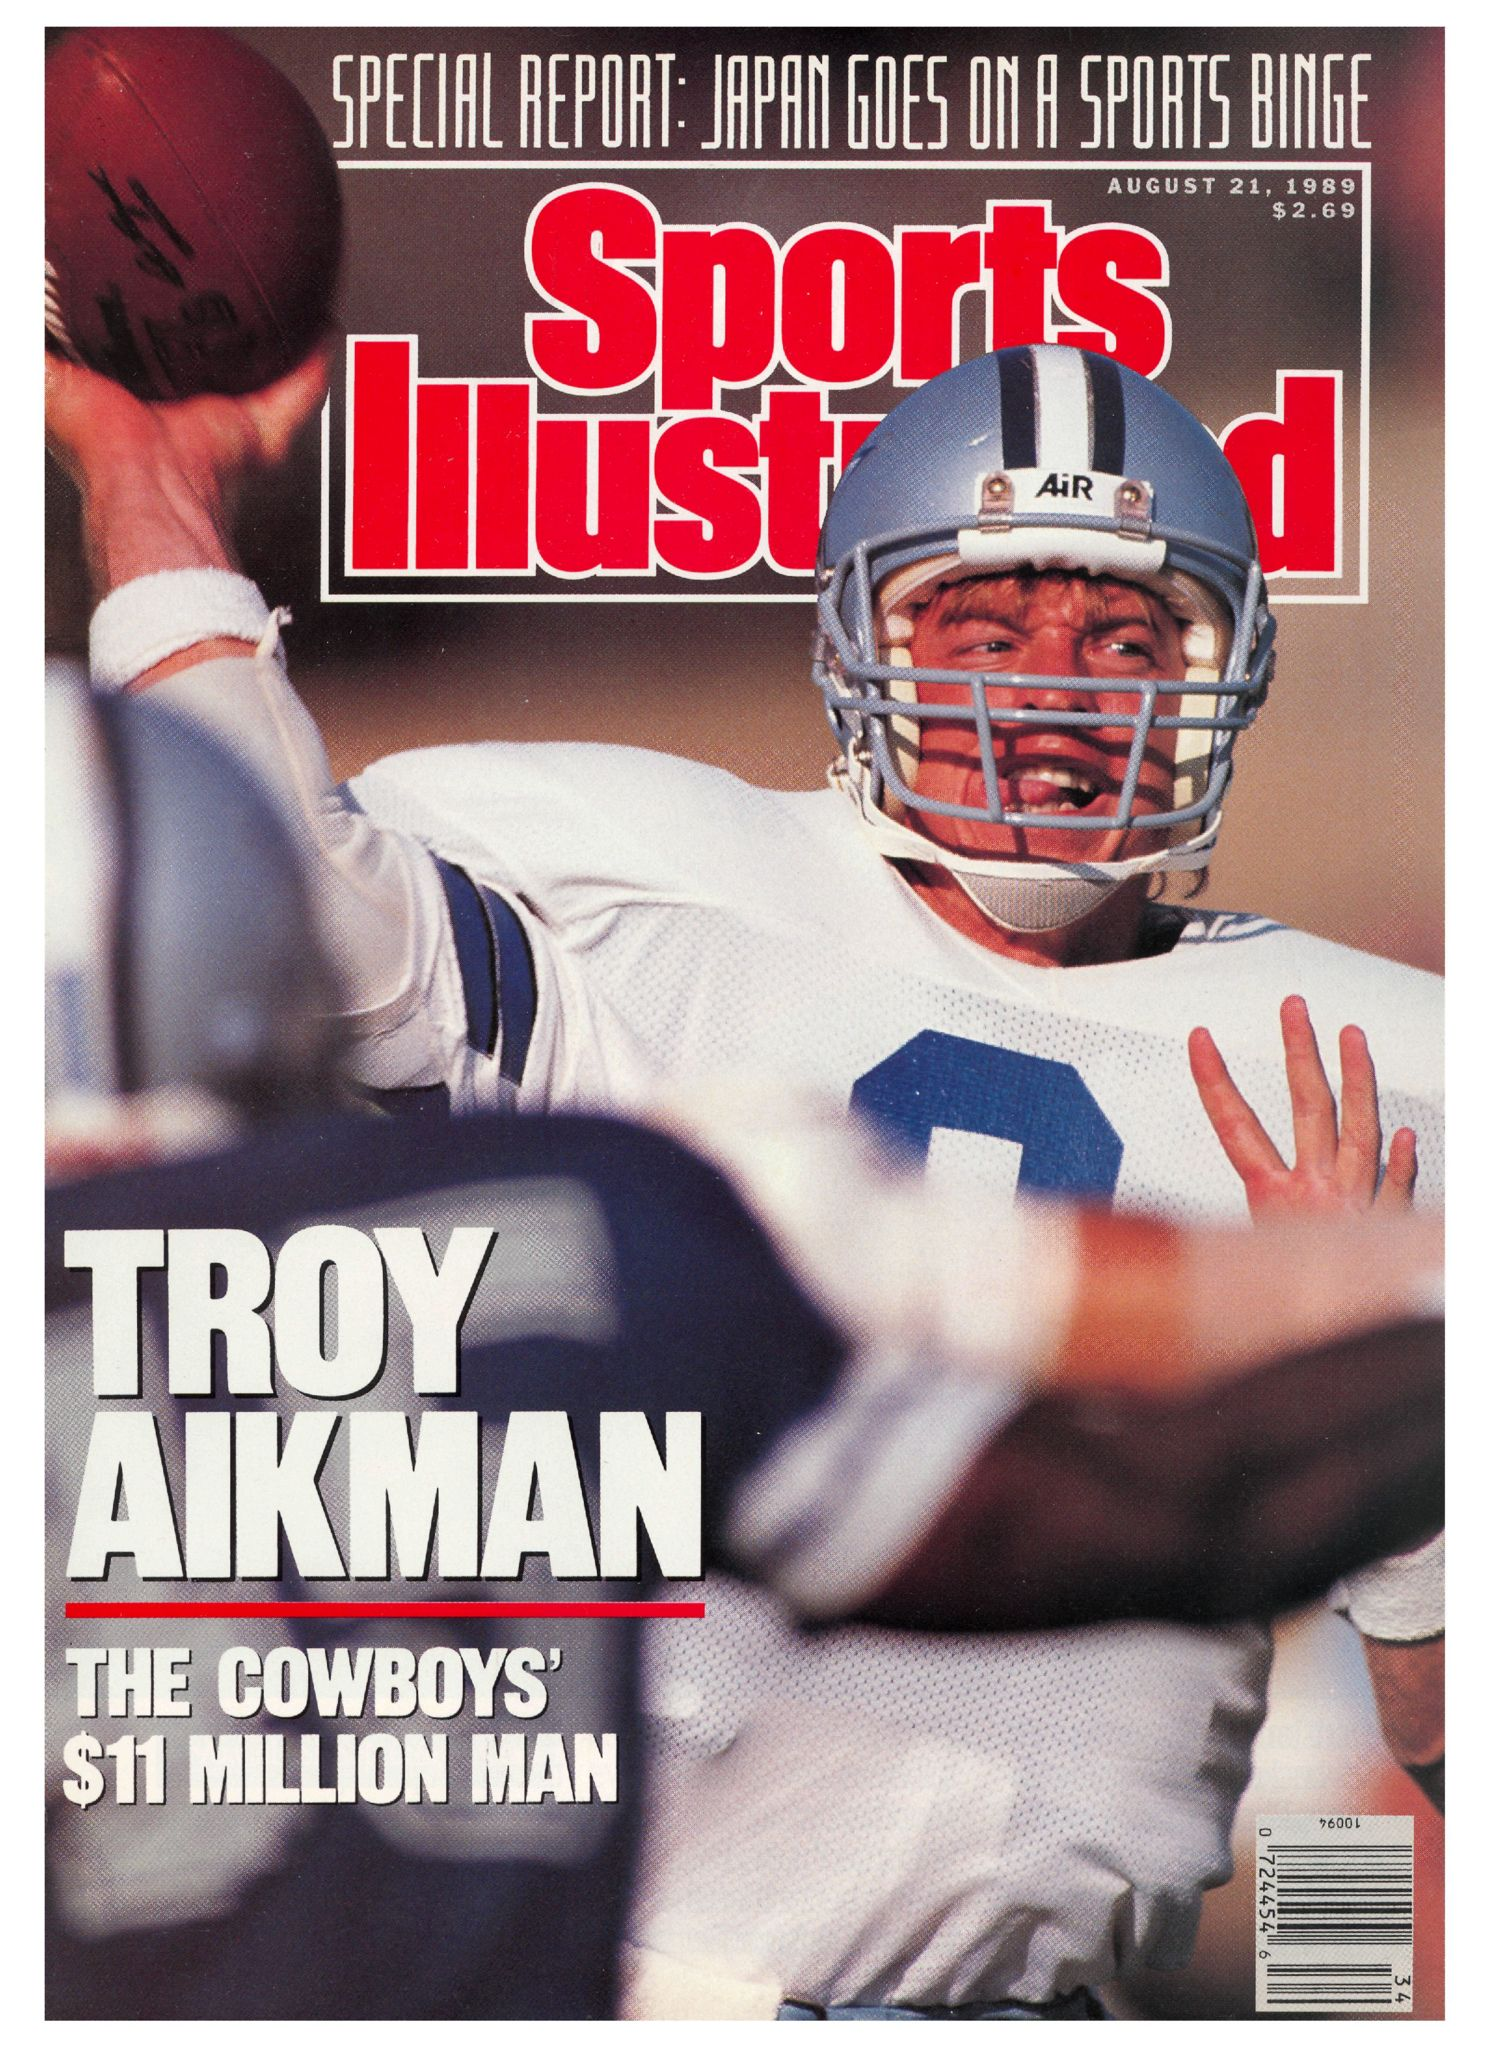 August 21 1989 issue viewer sports illustrated covers